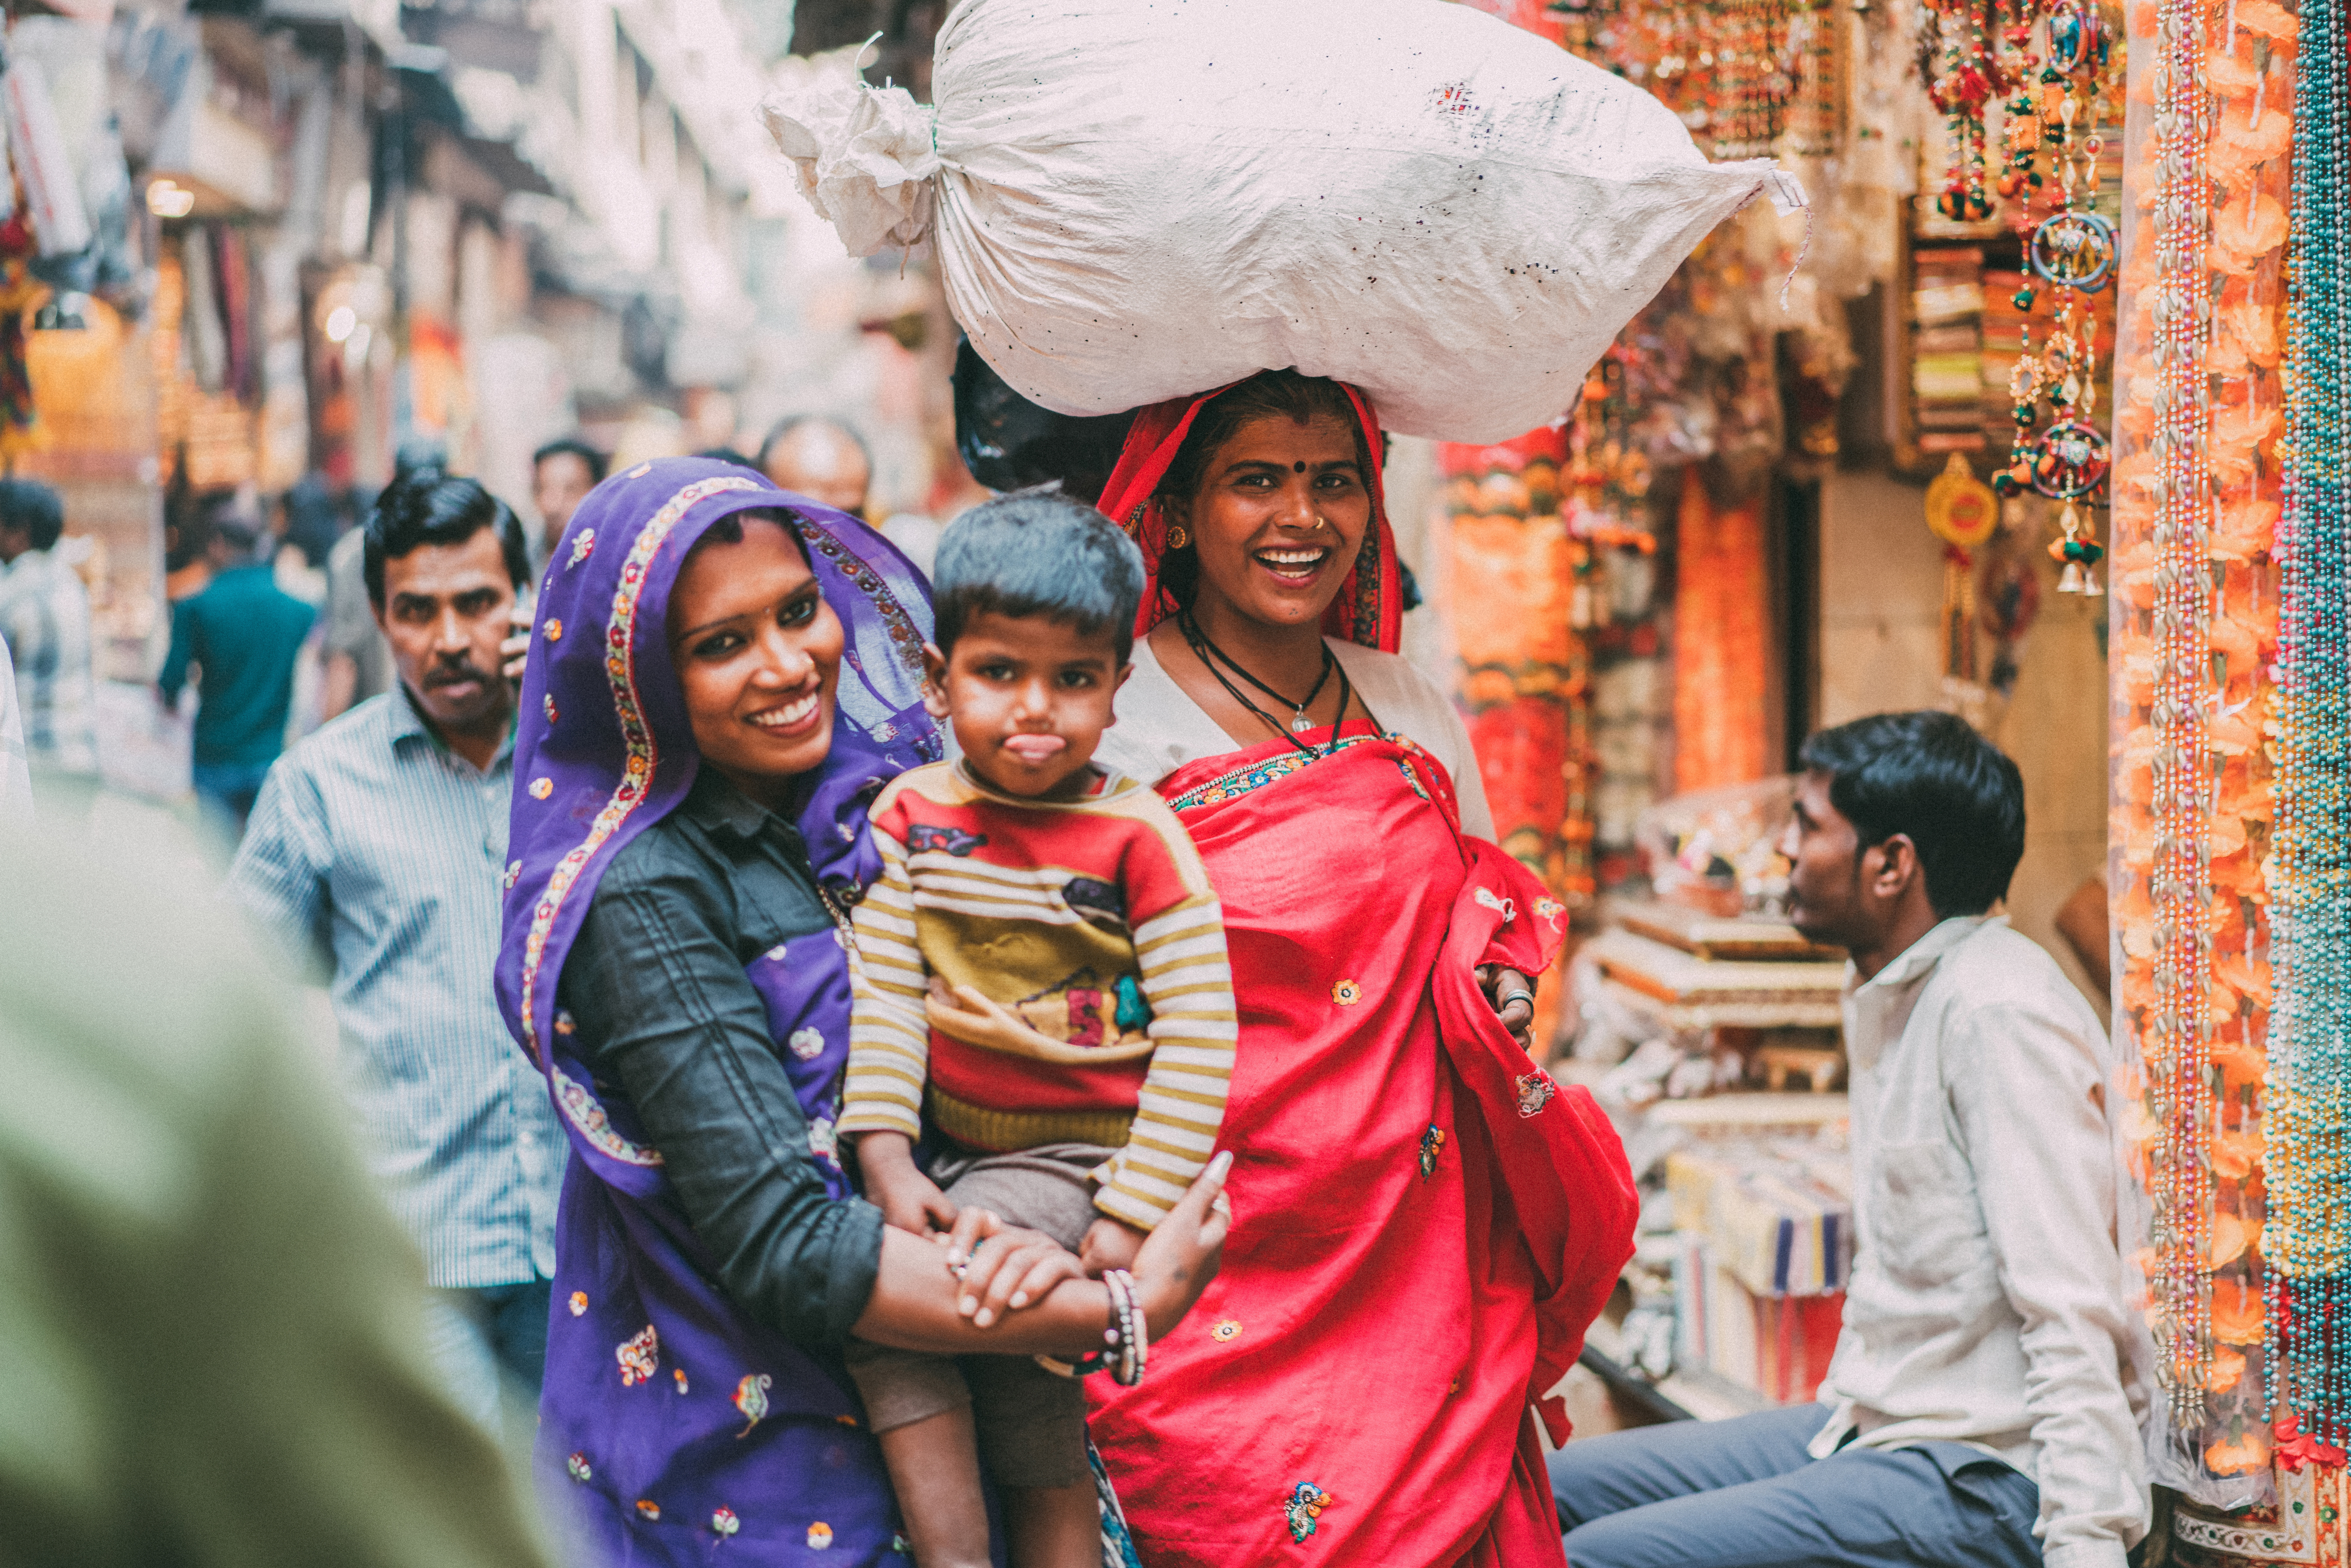 Smiling India Women with Child